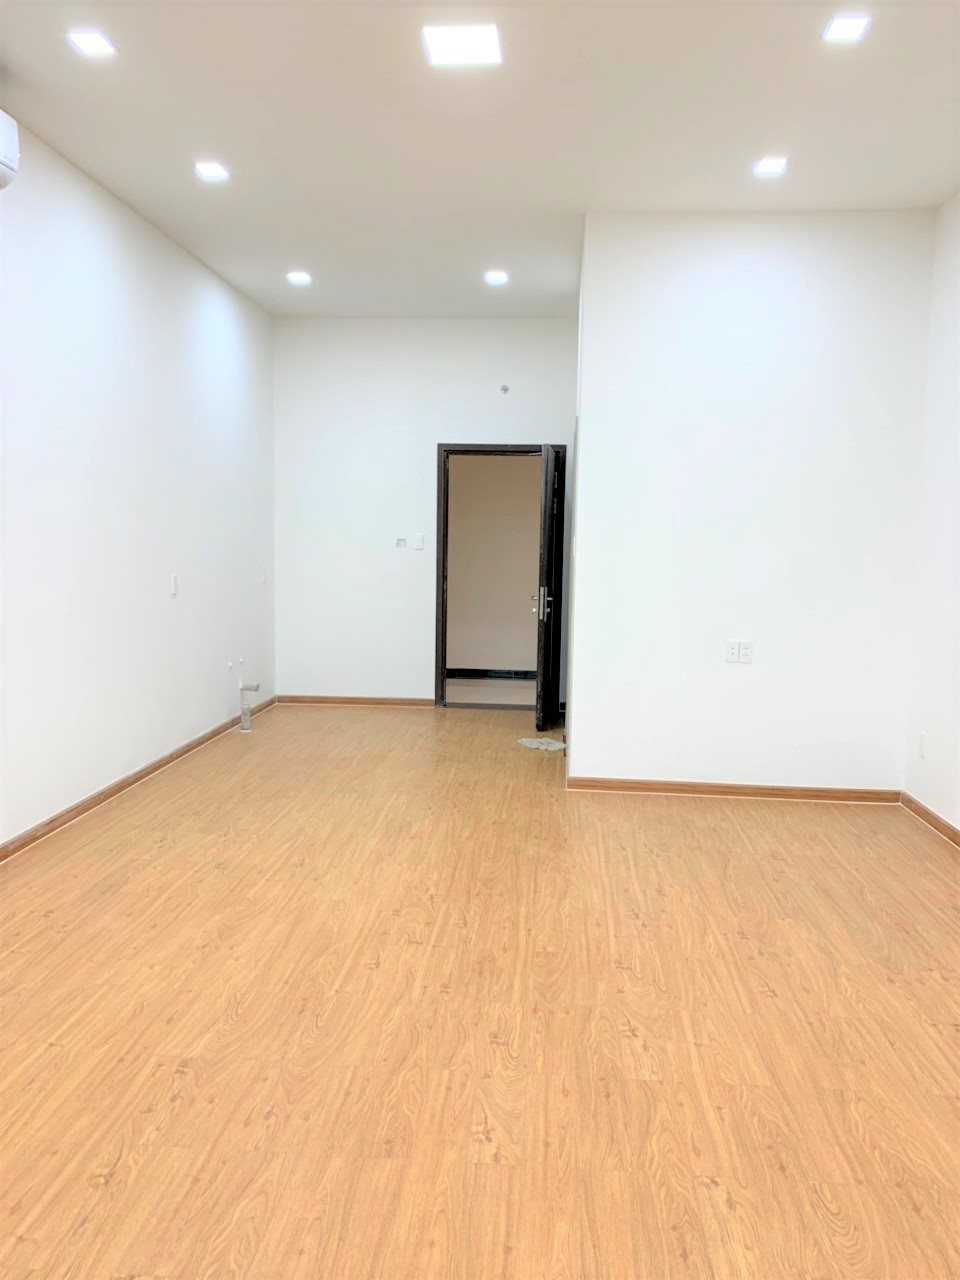 D227420 - APARTMENT FOR RENT - THE SUN AVENUE - 1 bedroom